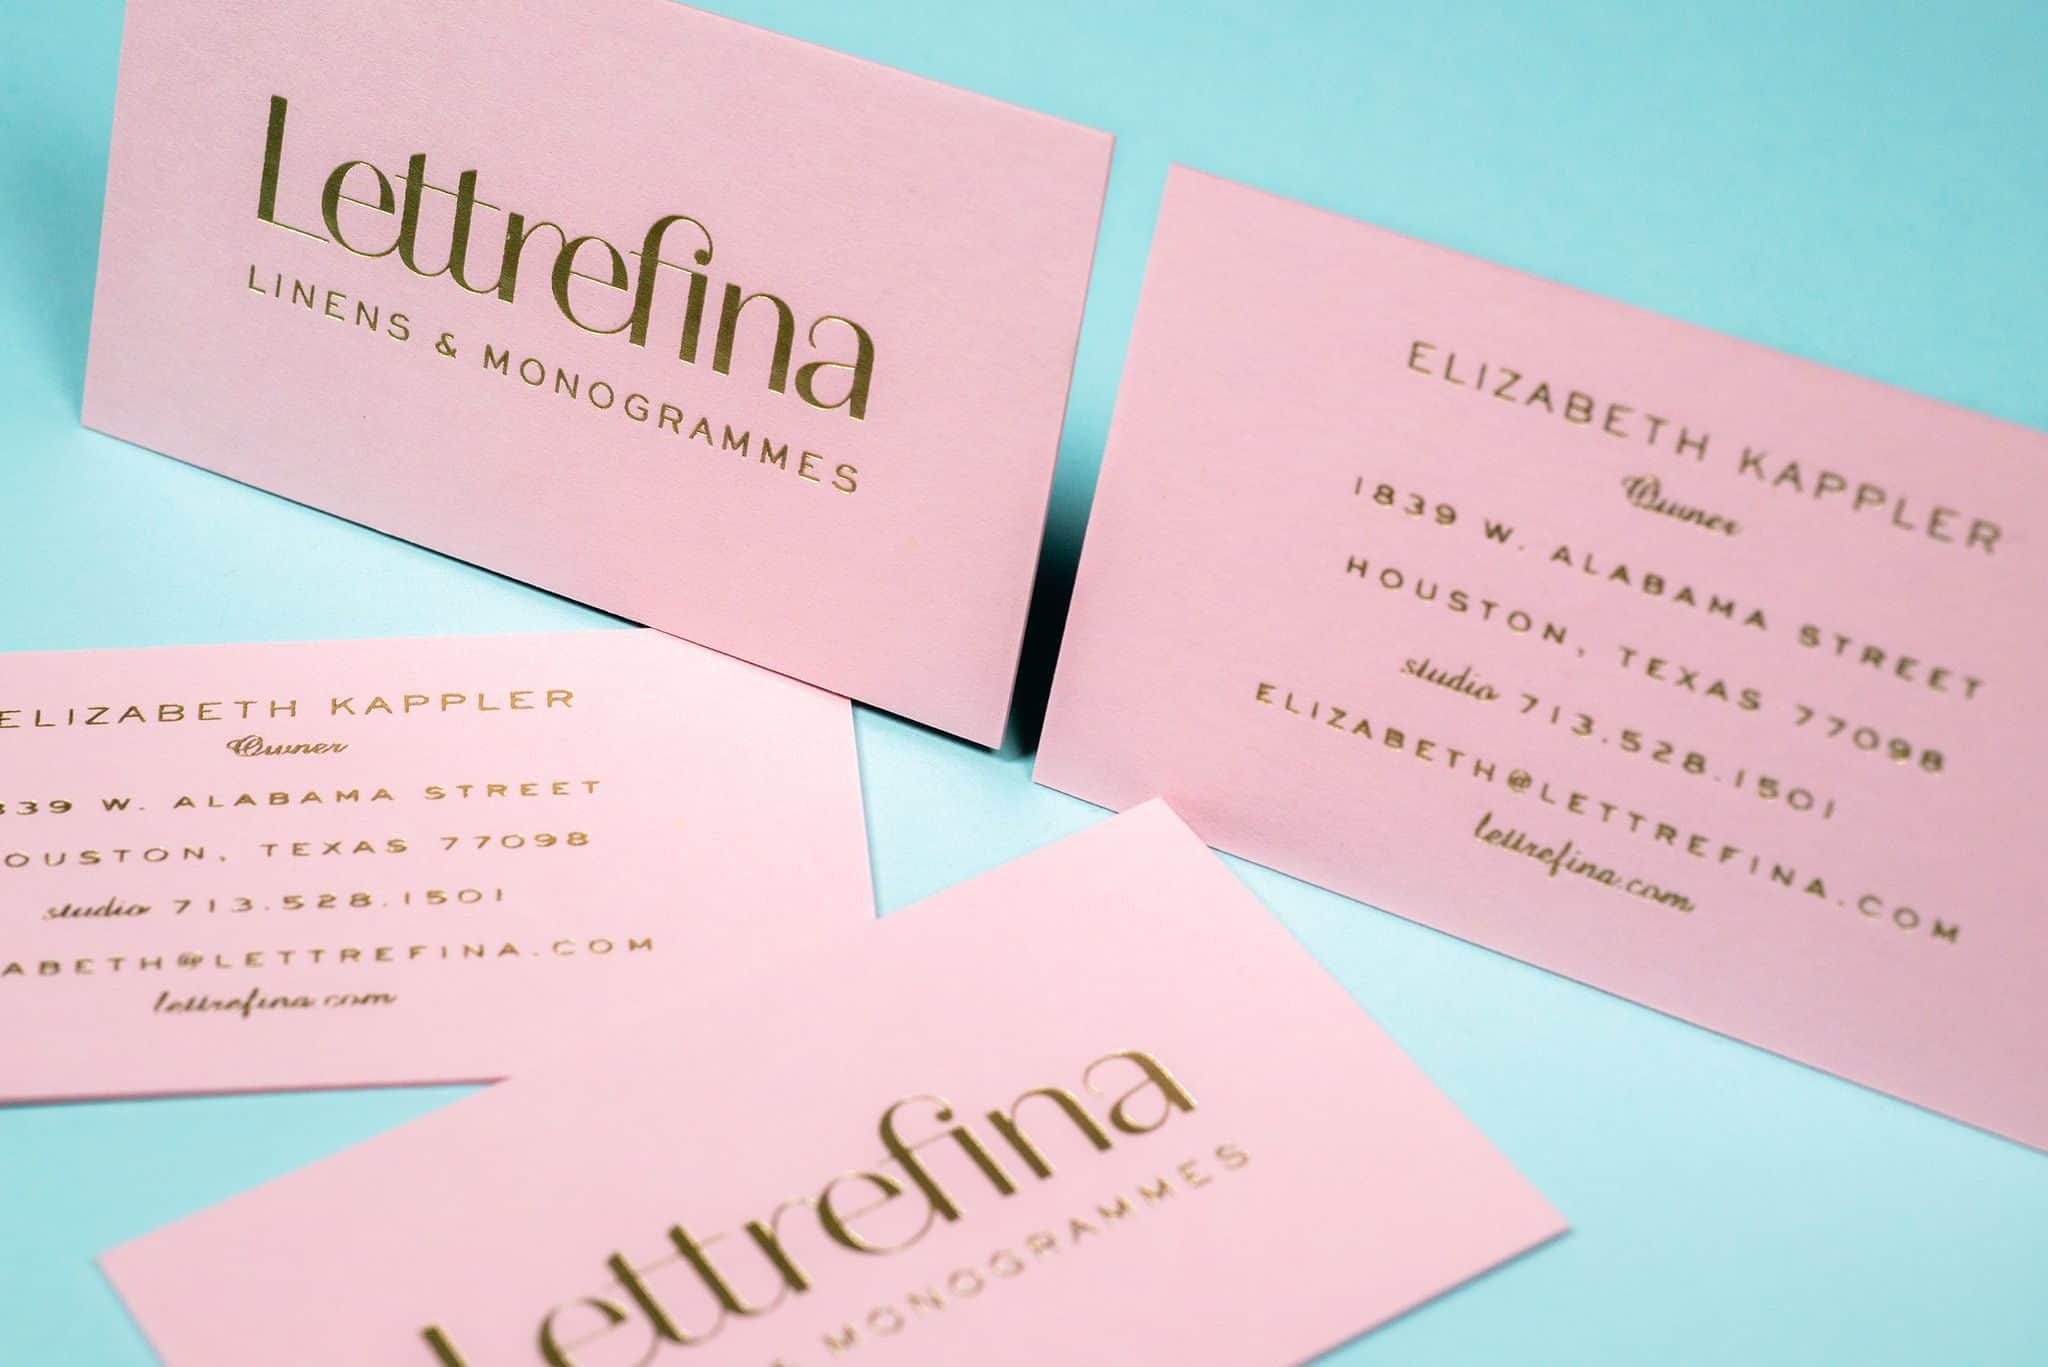 Foil stamped business cards for Lettrefina Linens & Monogrammes | Designed by Field of Study: A branding and graphic design consultancy | Houston TX | Jennifer Blanco & John Earles